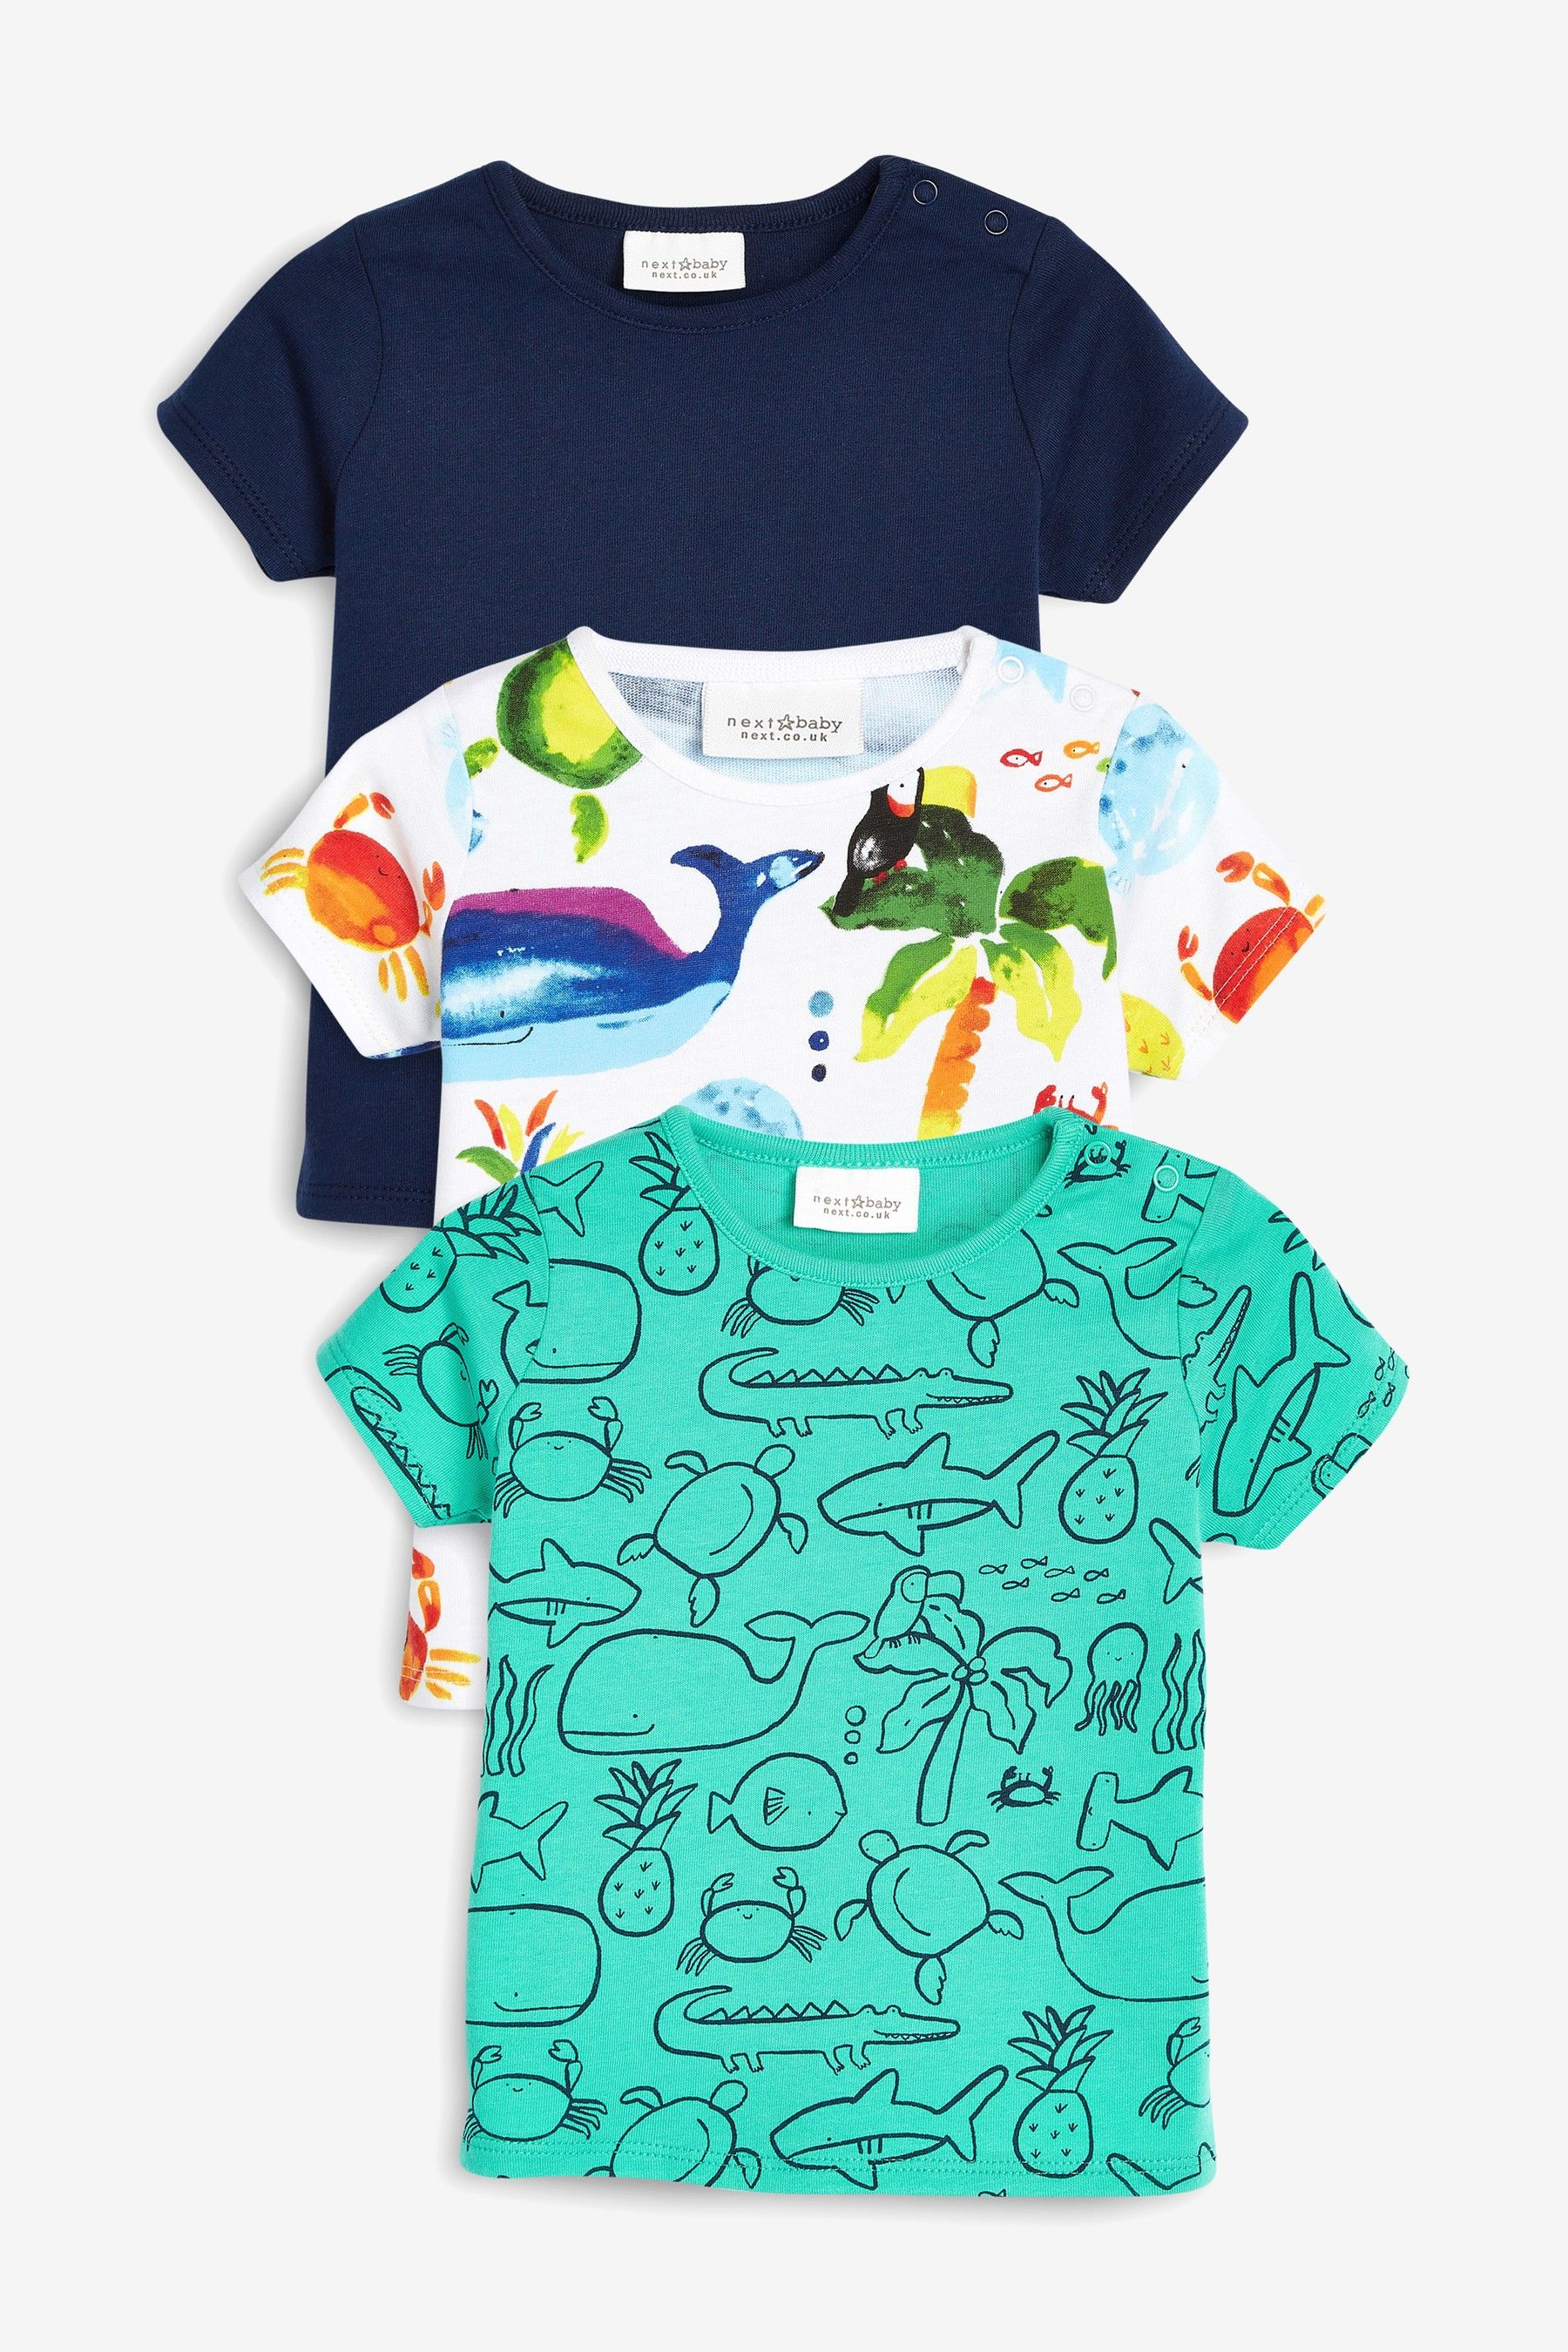 046ca70d3 Buy Bright Sea Print T-Shirt Three Pack (0 Monate bis 2 Jahre) from ...